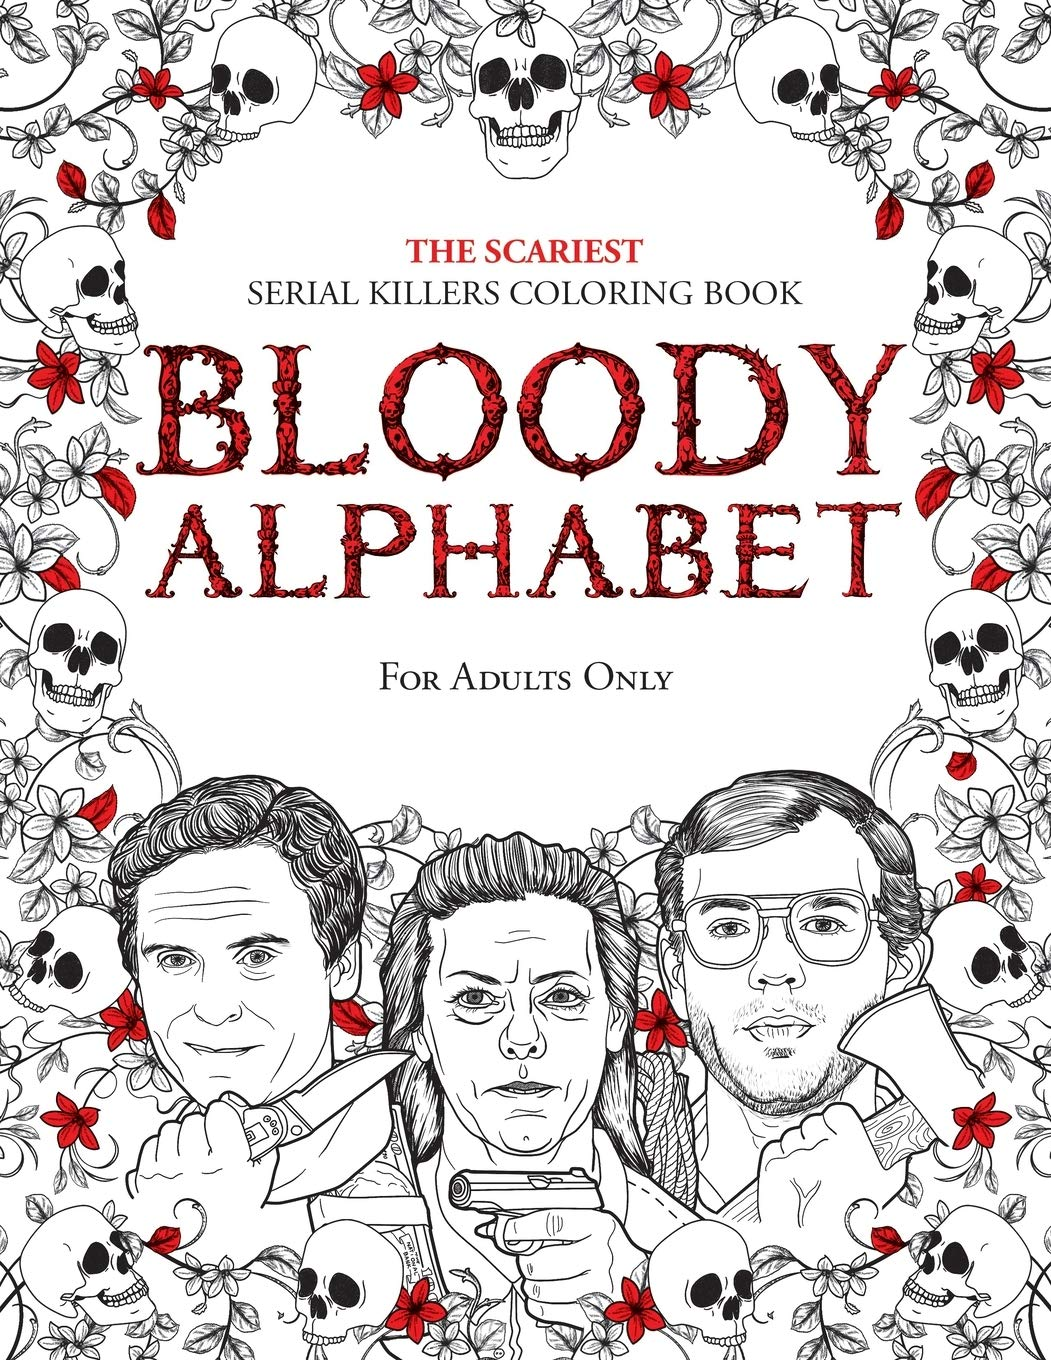 Amazon Com Bloody Alphabet The Scariest Serial Killers Coloring Book A True Crime Adult Gift Full Of Famous Murderers For Adults Only True Crime Gifts 9781702019392 Berry Brian Books